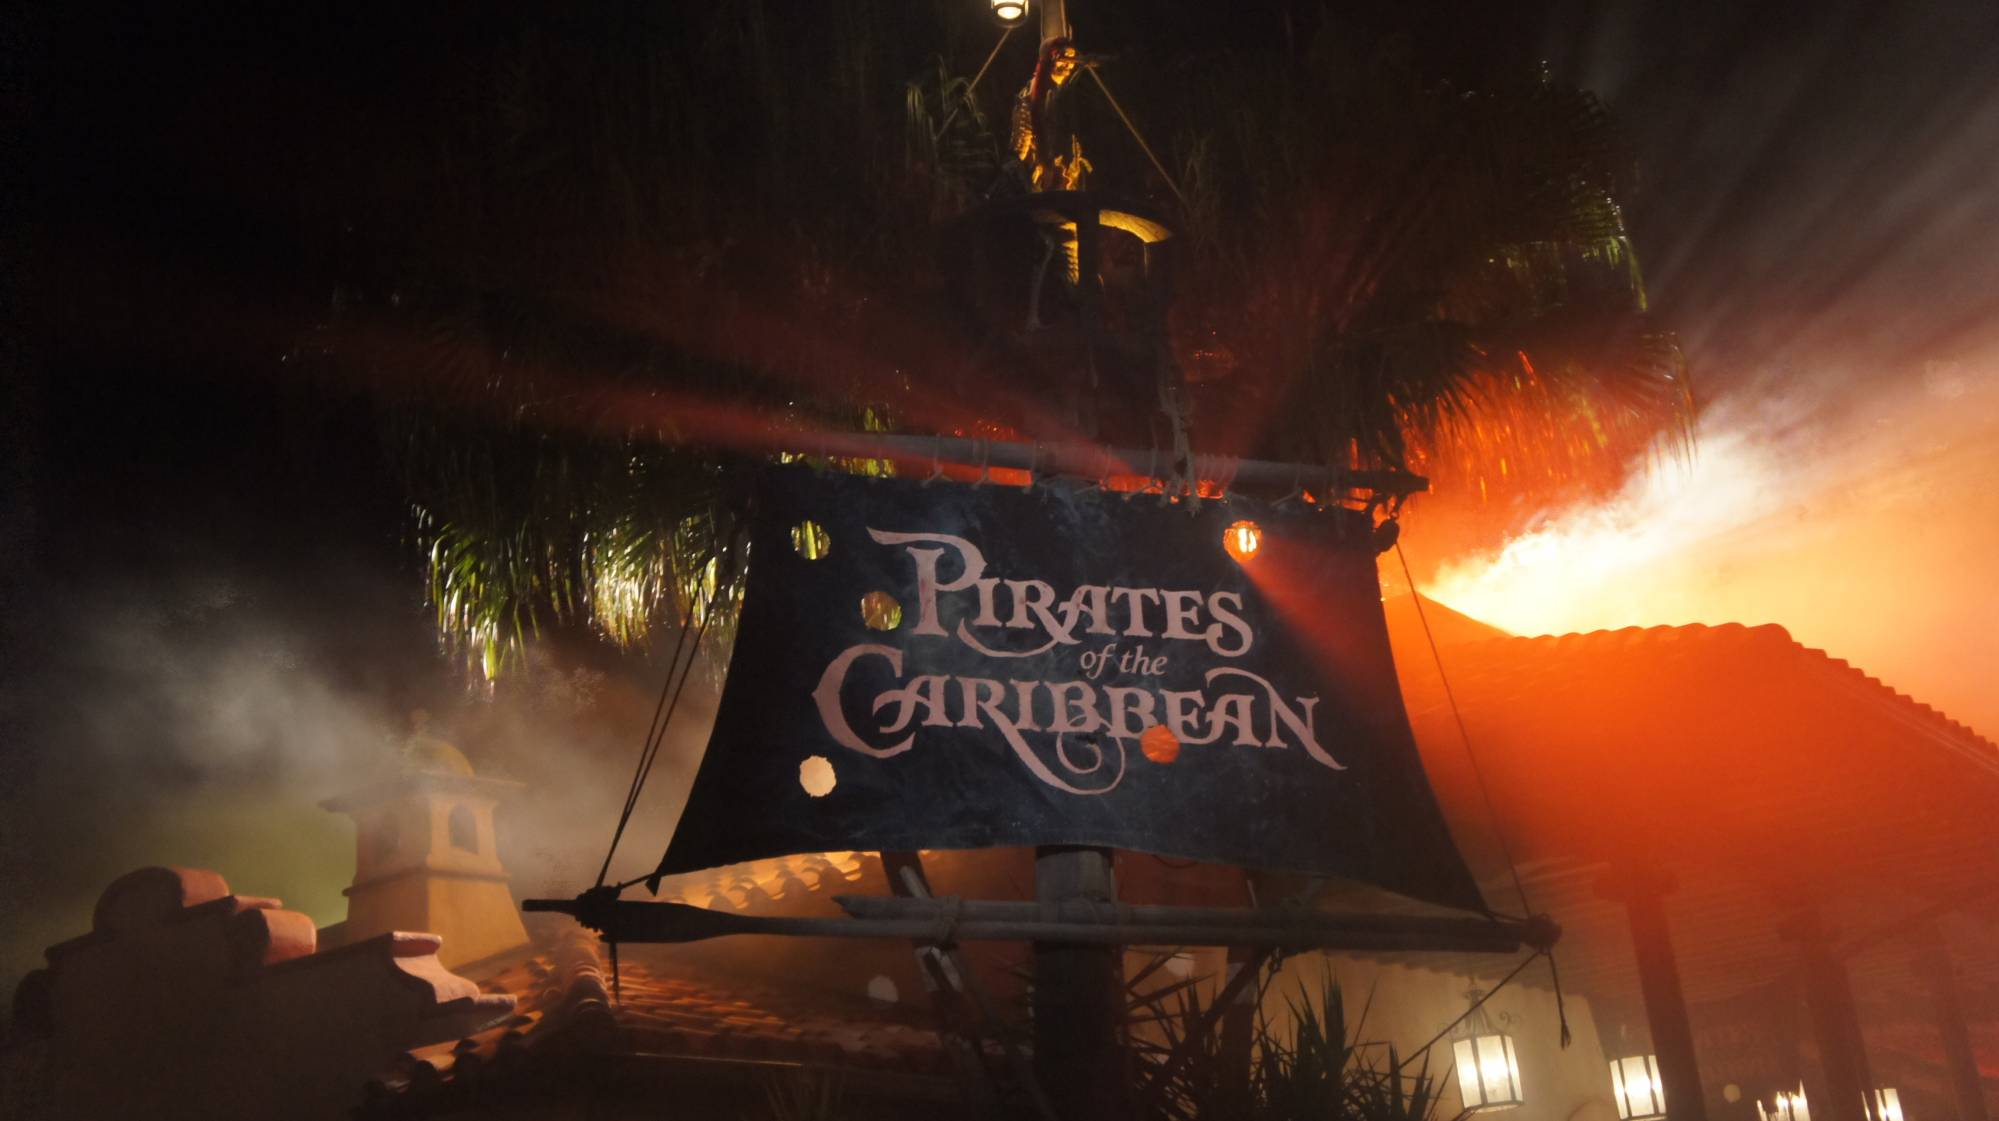 Pirates of the Caribbean at Night